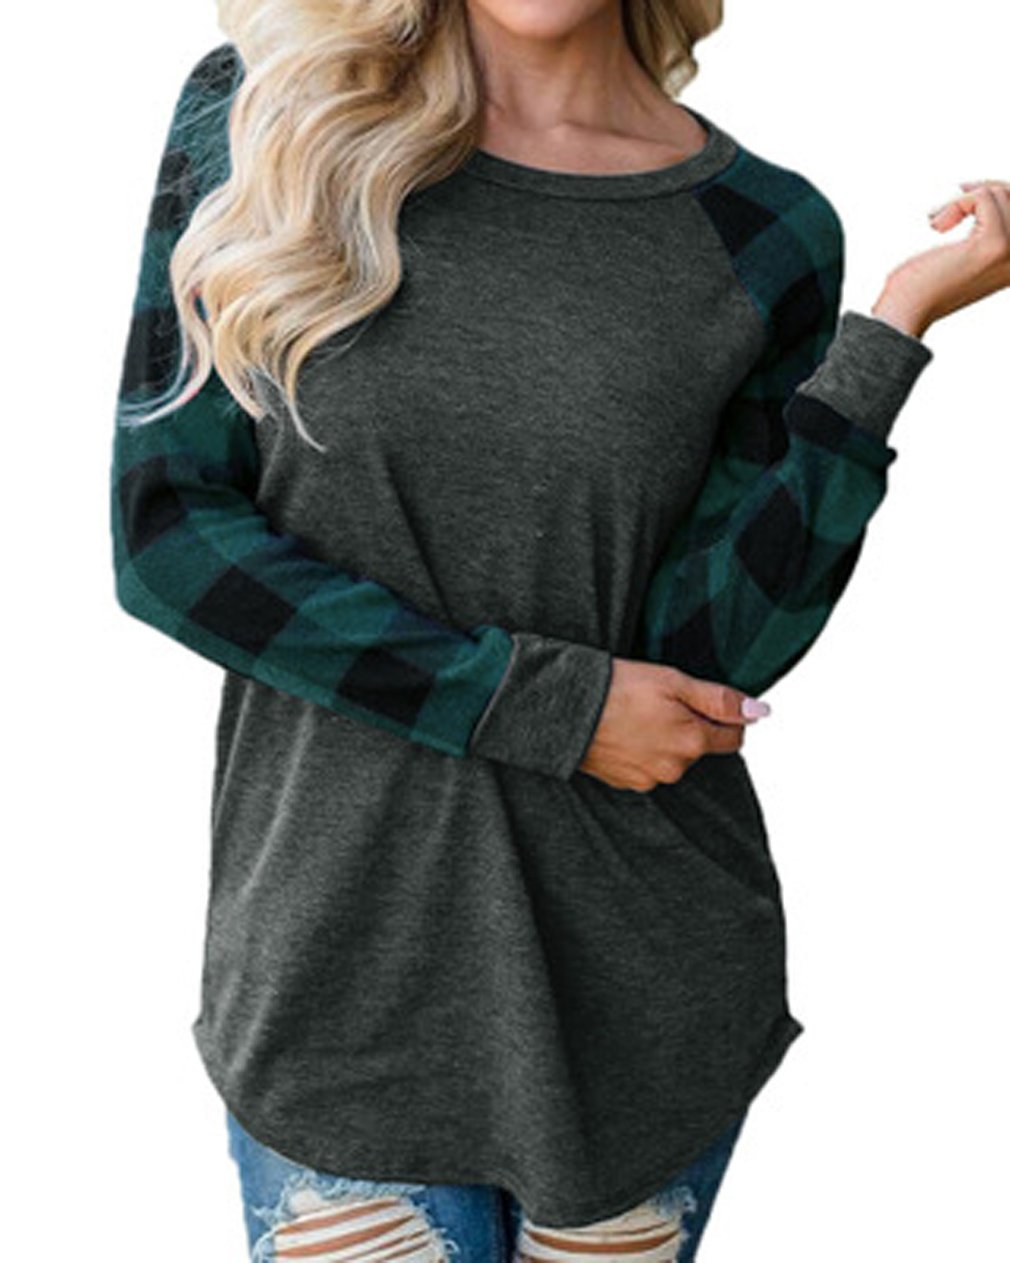 Tomlyws Women's Casual Crewneck Plaid Long Sleeve T-Shirt Blouse and Tops Dark Grey and Green L